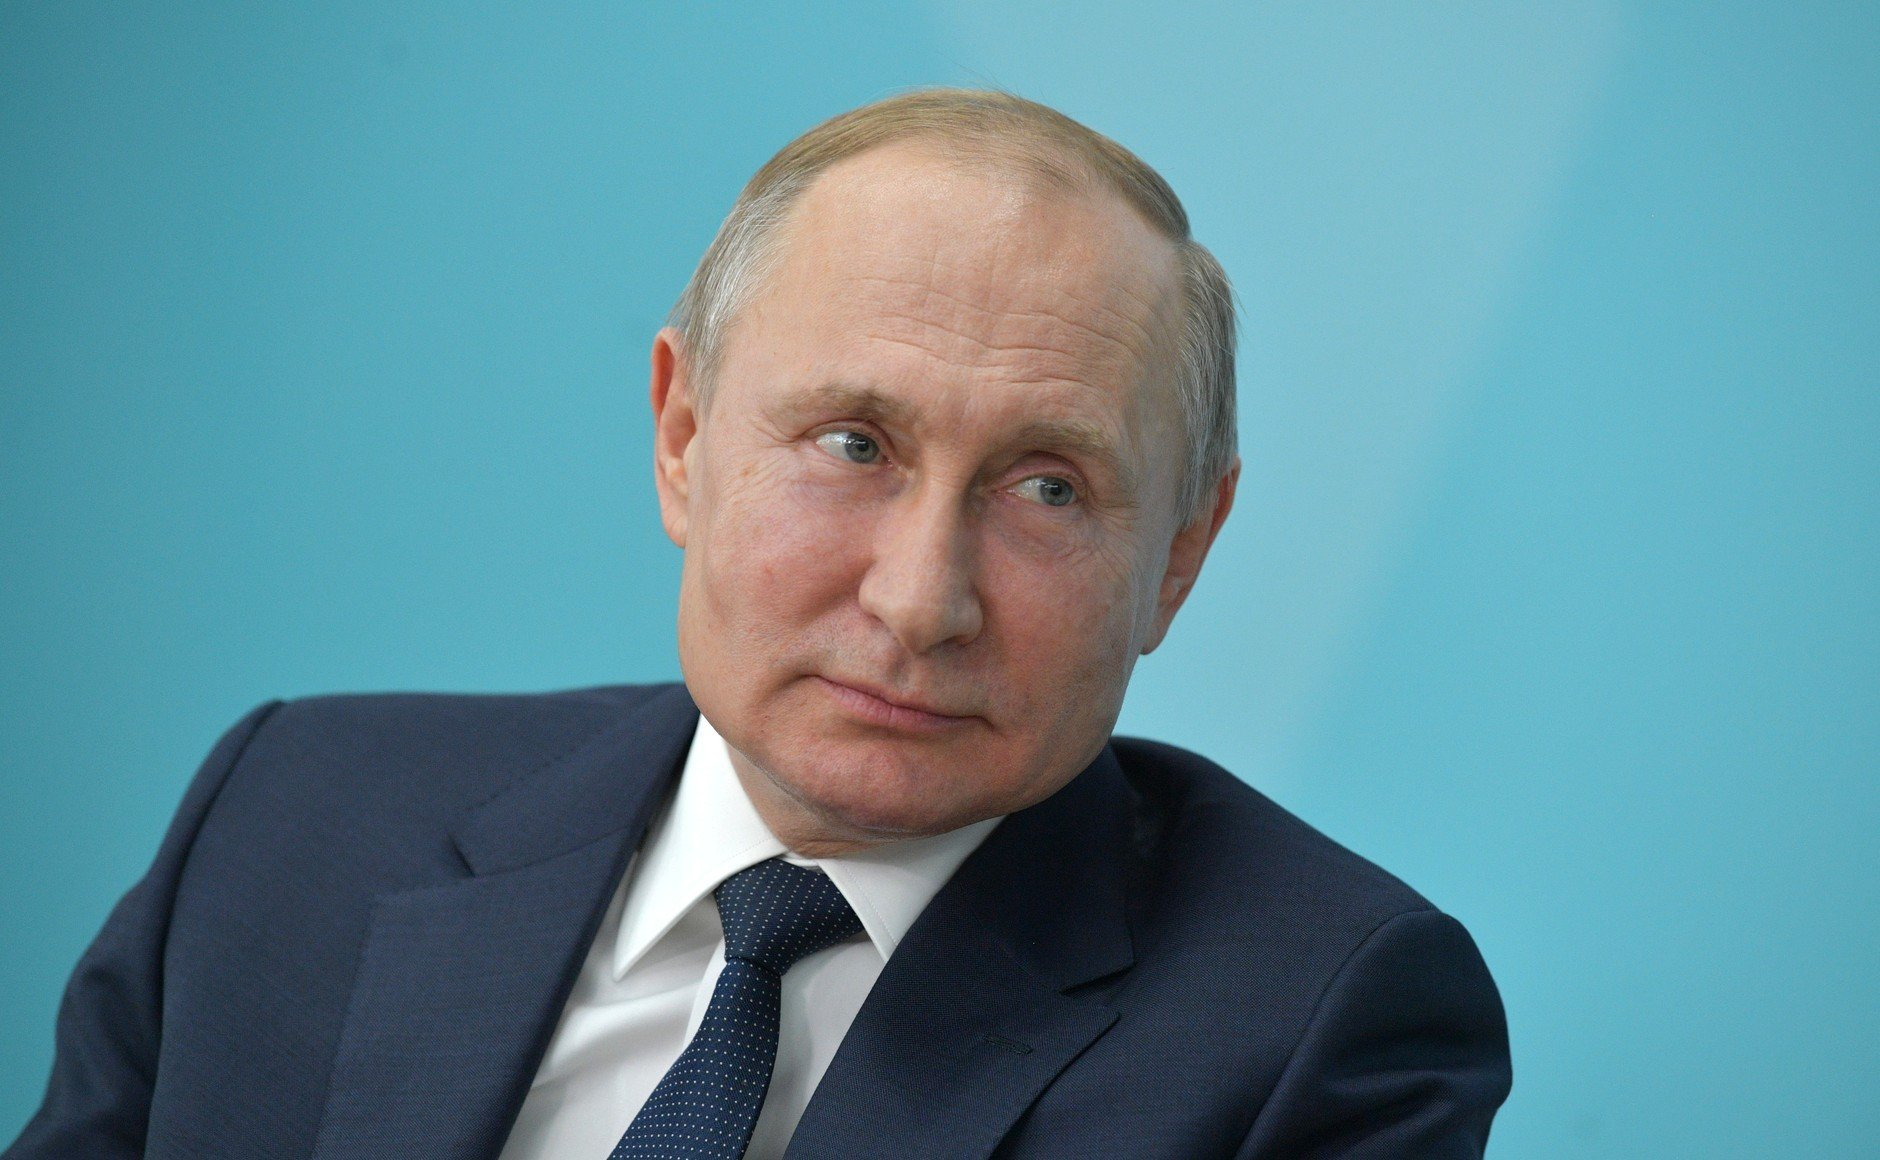 Vladimir Putin Says Lee Kuan Yew S Singapore Not Suitable Model For Russia South China Morning Post